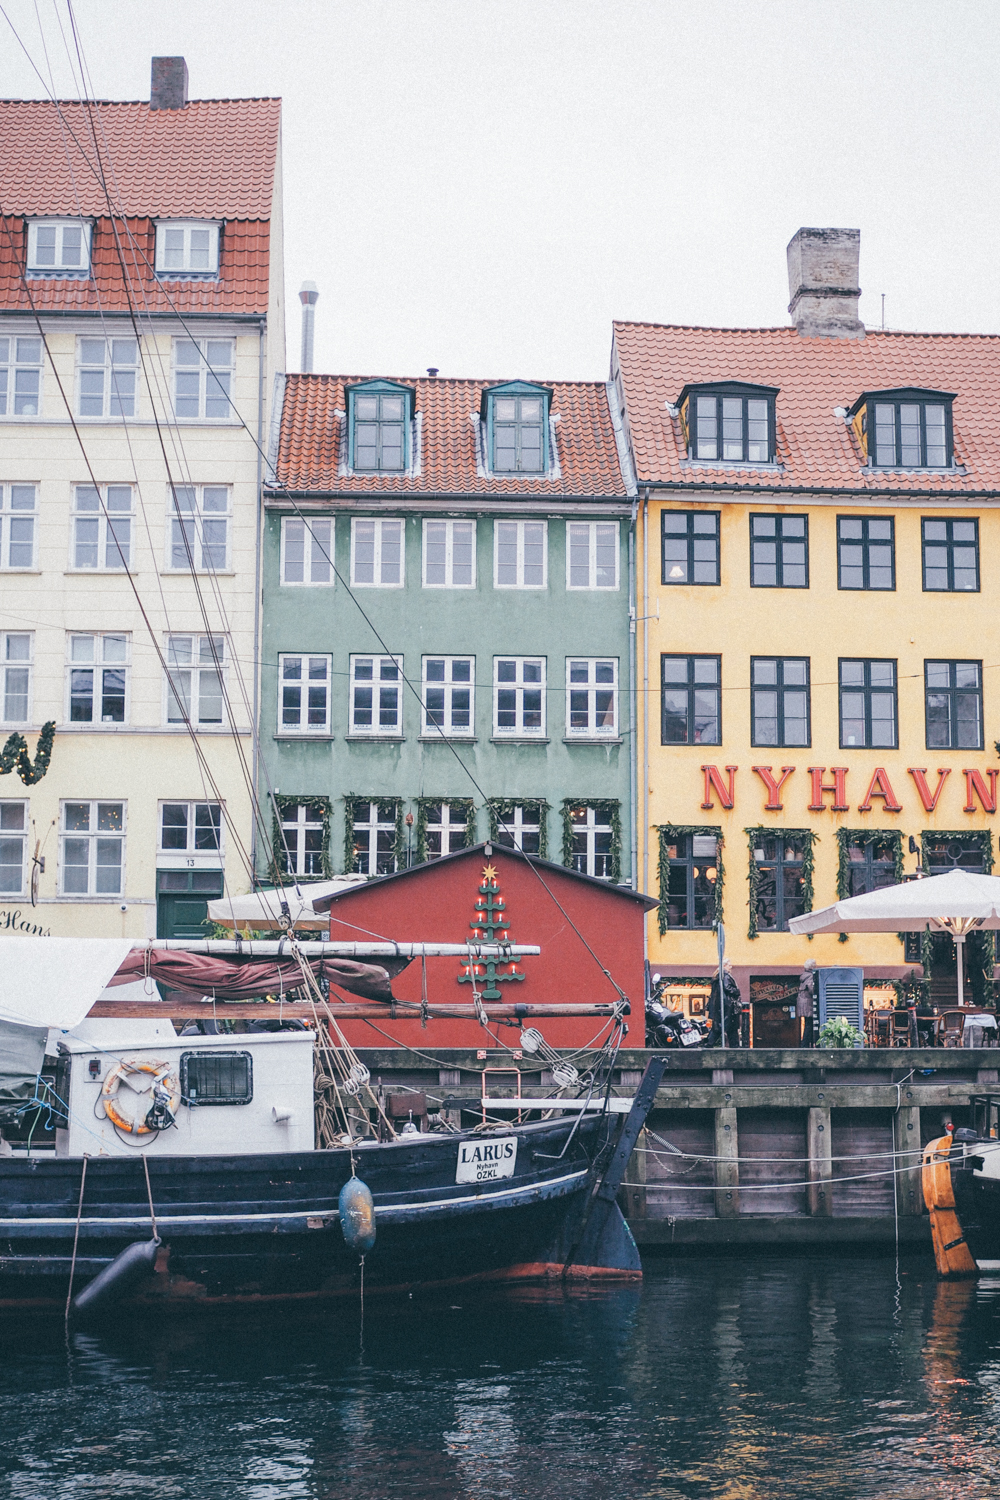 Nyhavn - Copenhague / Tippy.fr